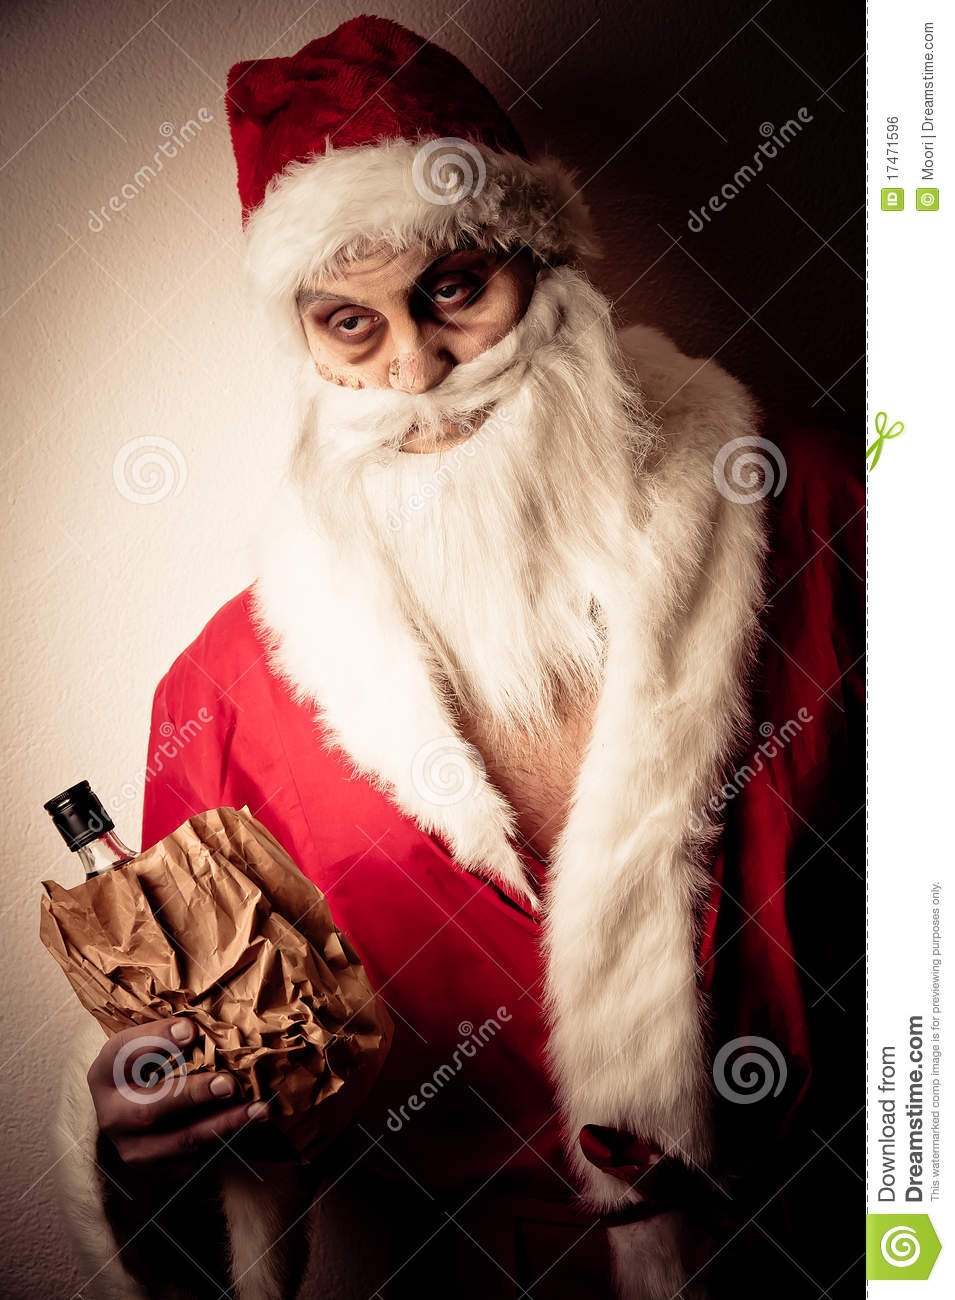 Merry Scary Christmas Royalty Free Stock Image Image